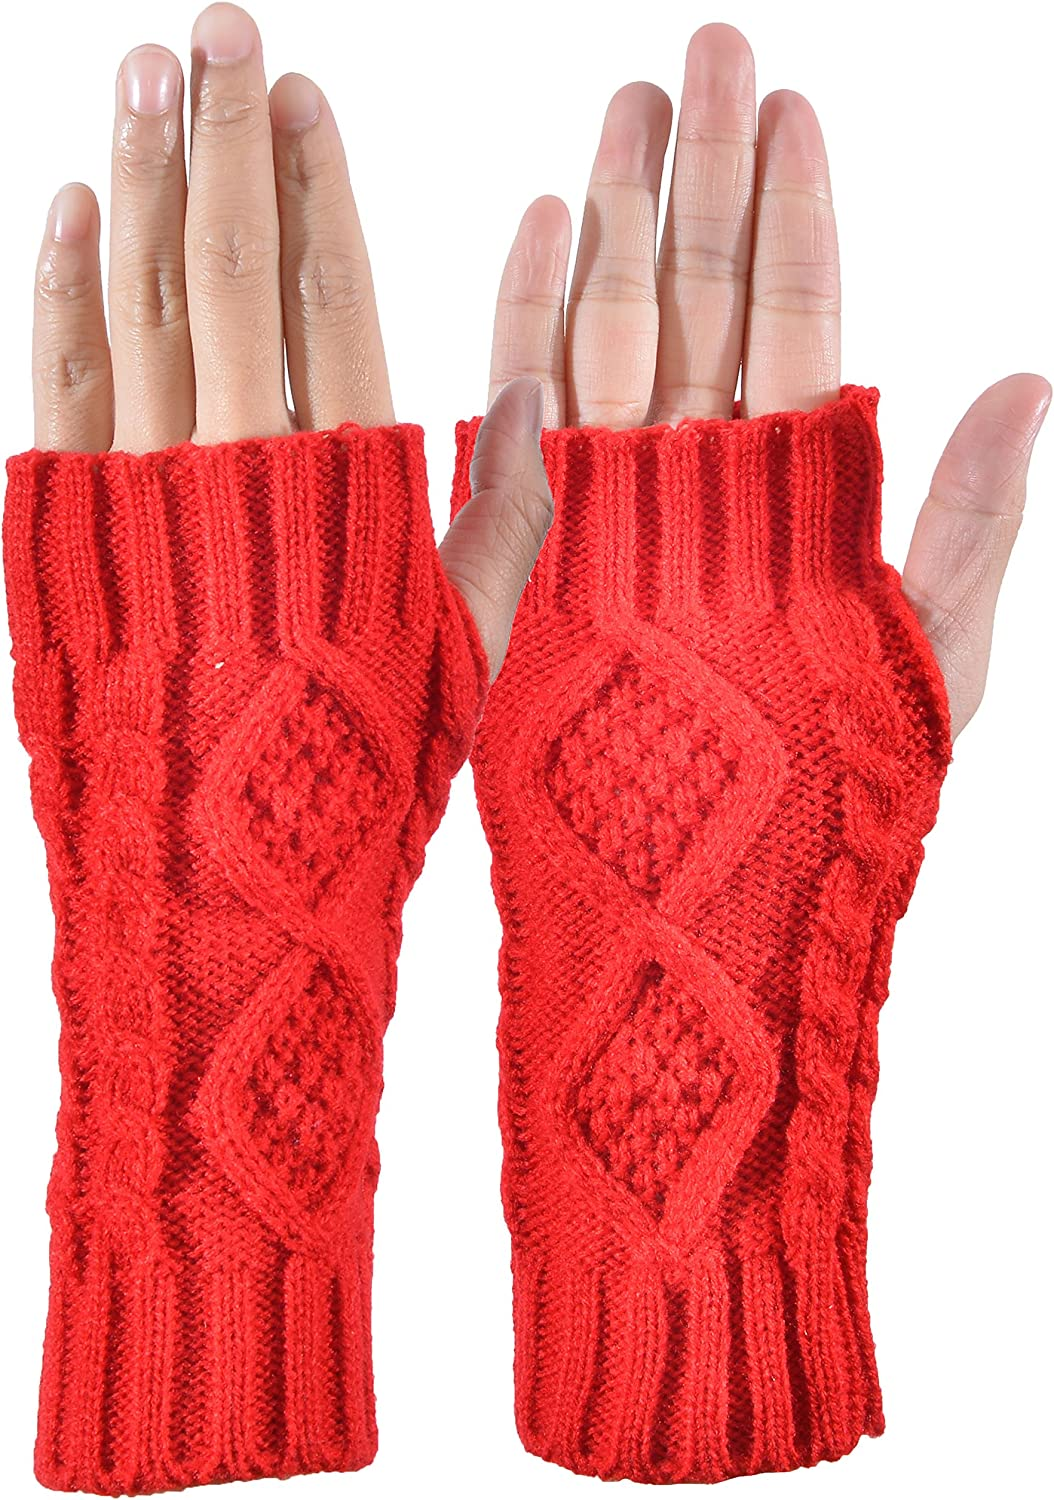 Outrip Fingerless Gloves...